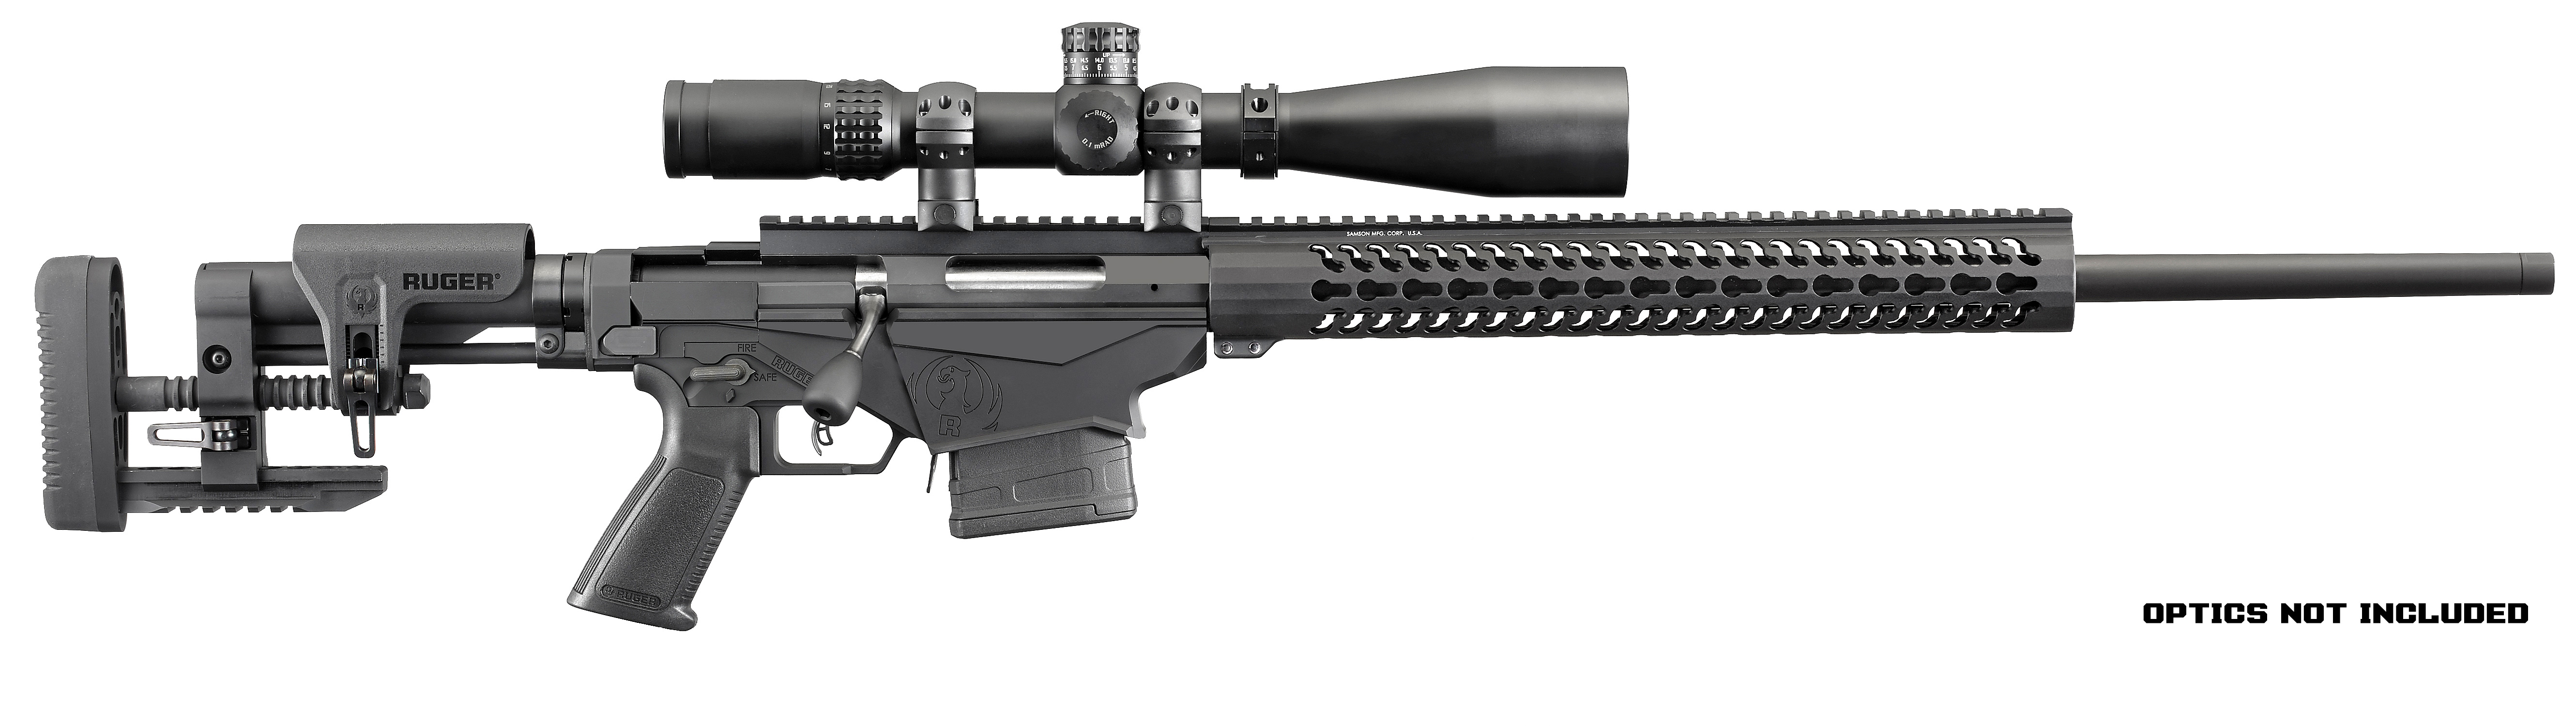 Ruger Precision Rifle - .243 Win